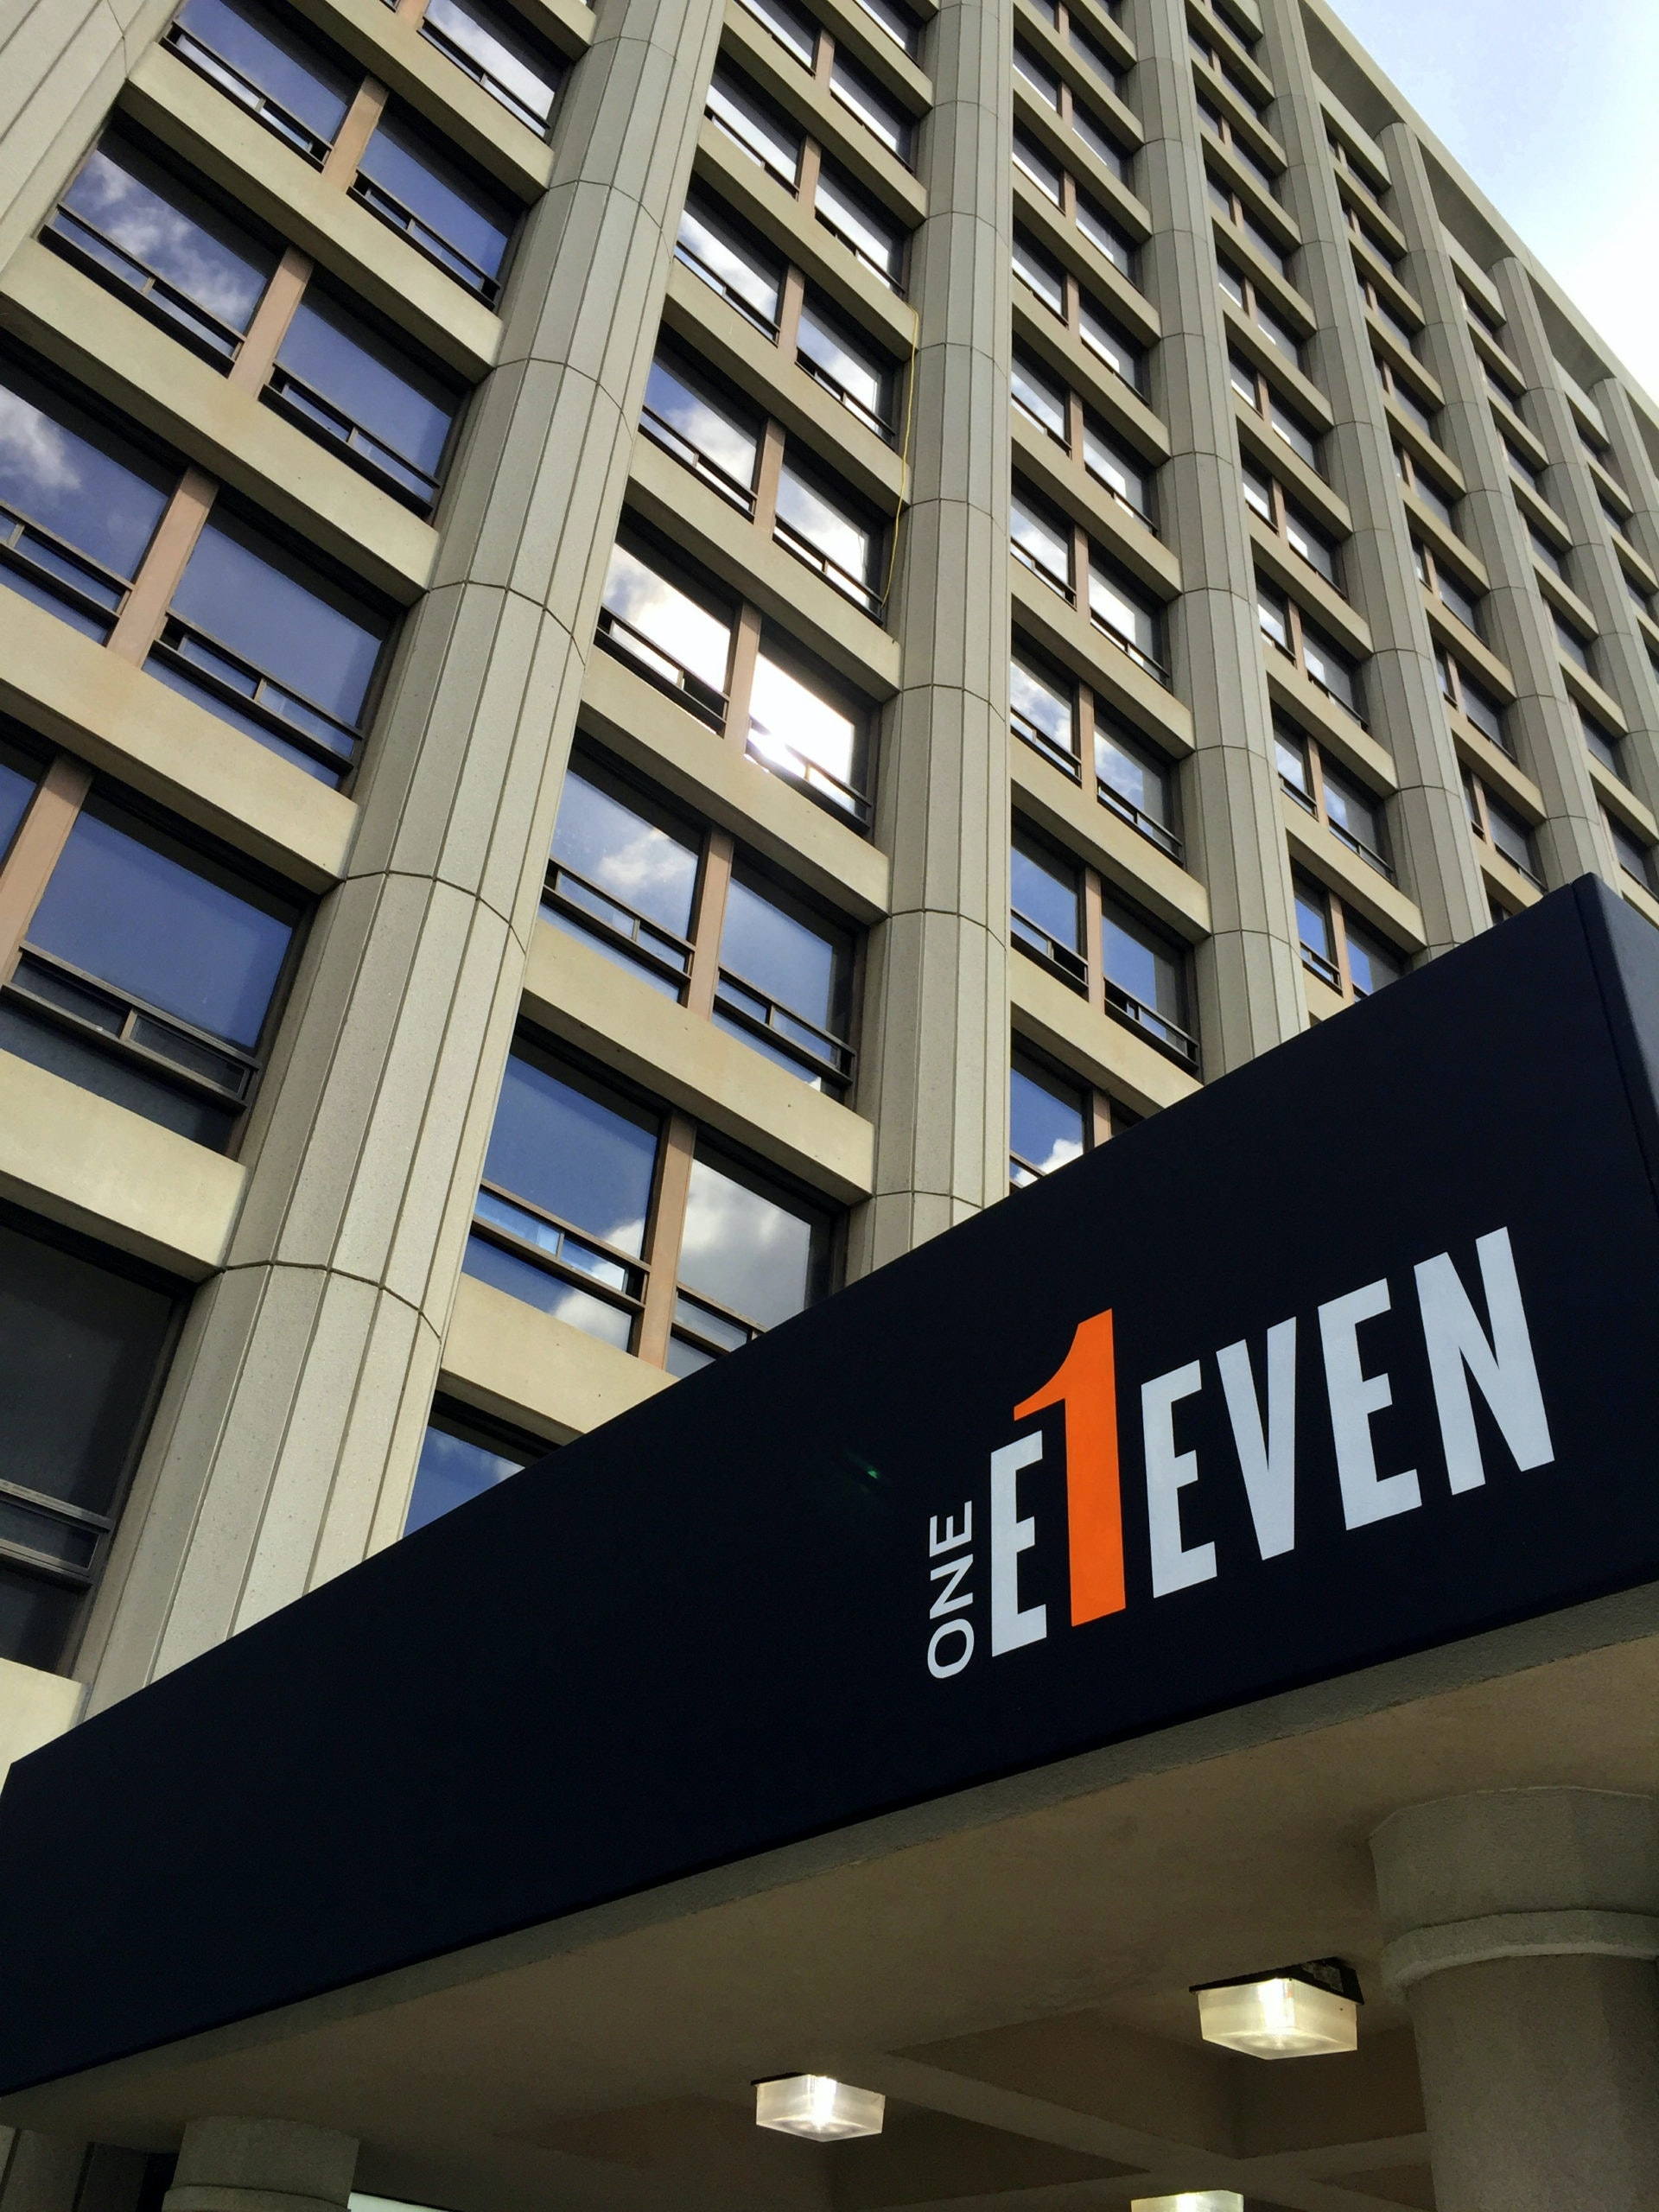 1Eleven – Off-campus residence for University of Ottawa students